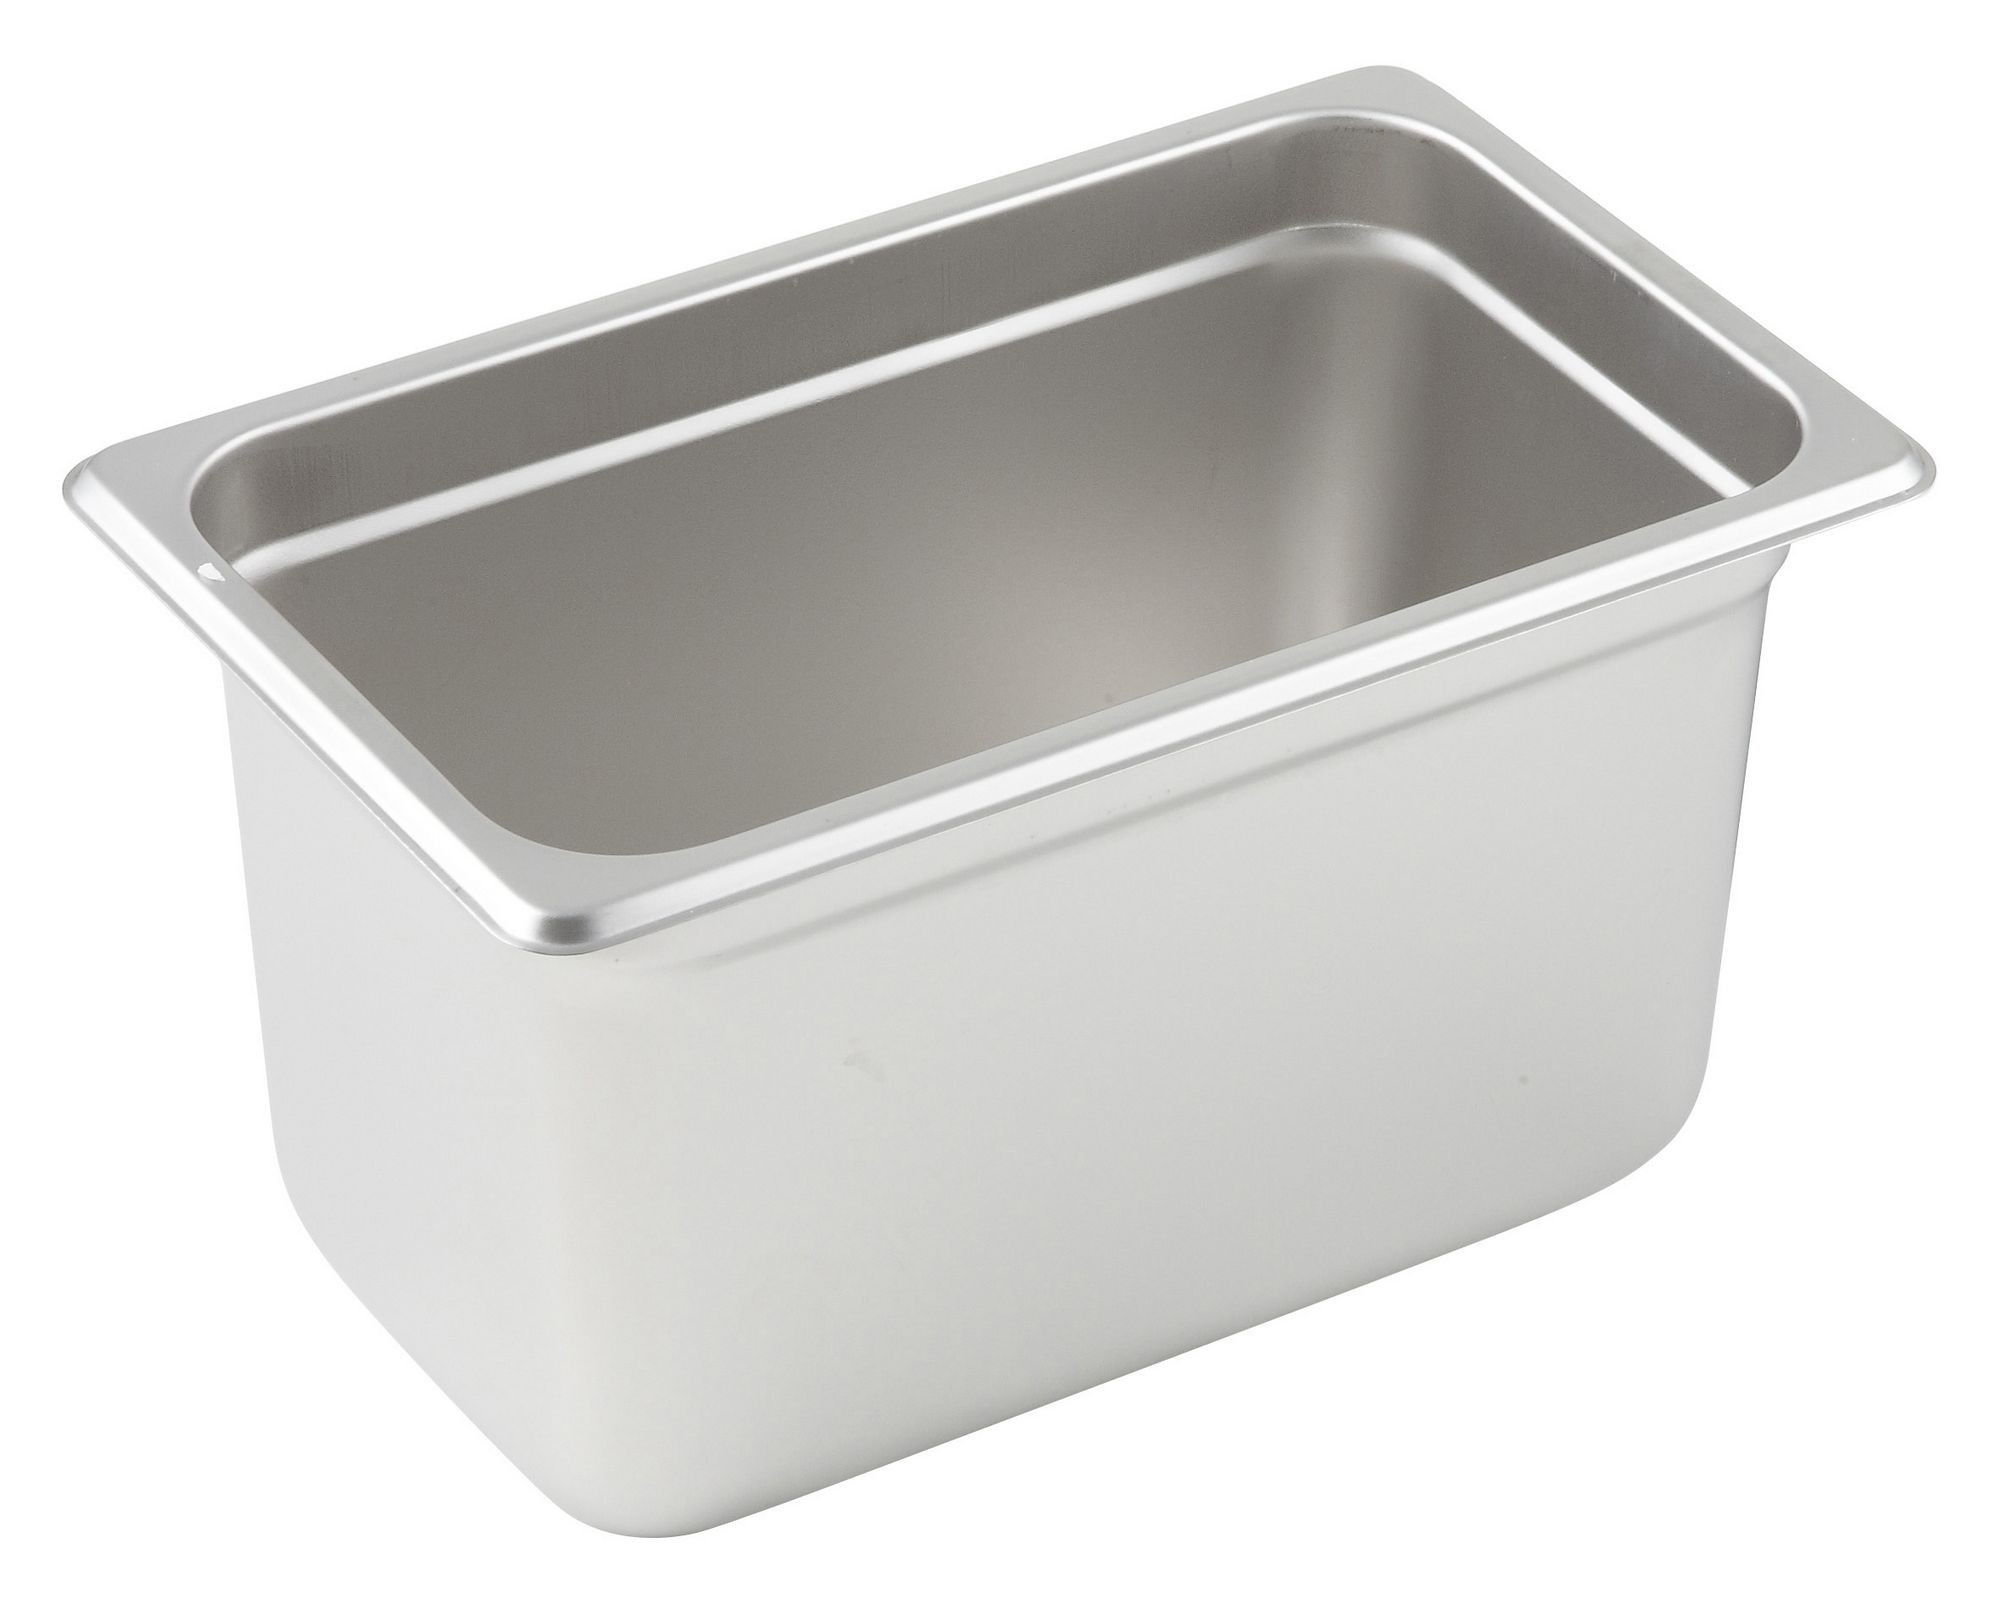 Winco Quarter Size Anti-Jamming Steam Table Pan (25 Gauge, 6